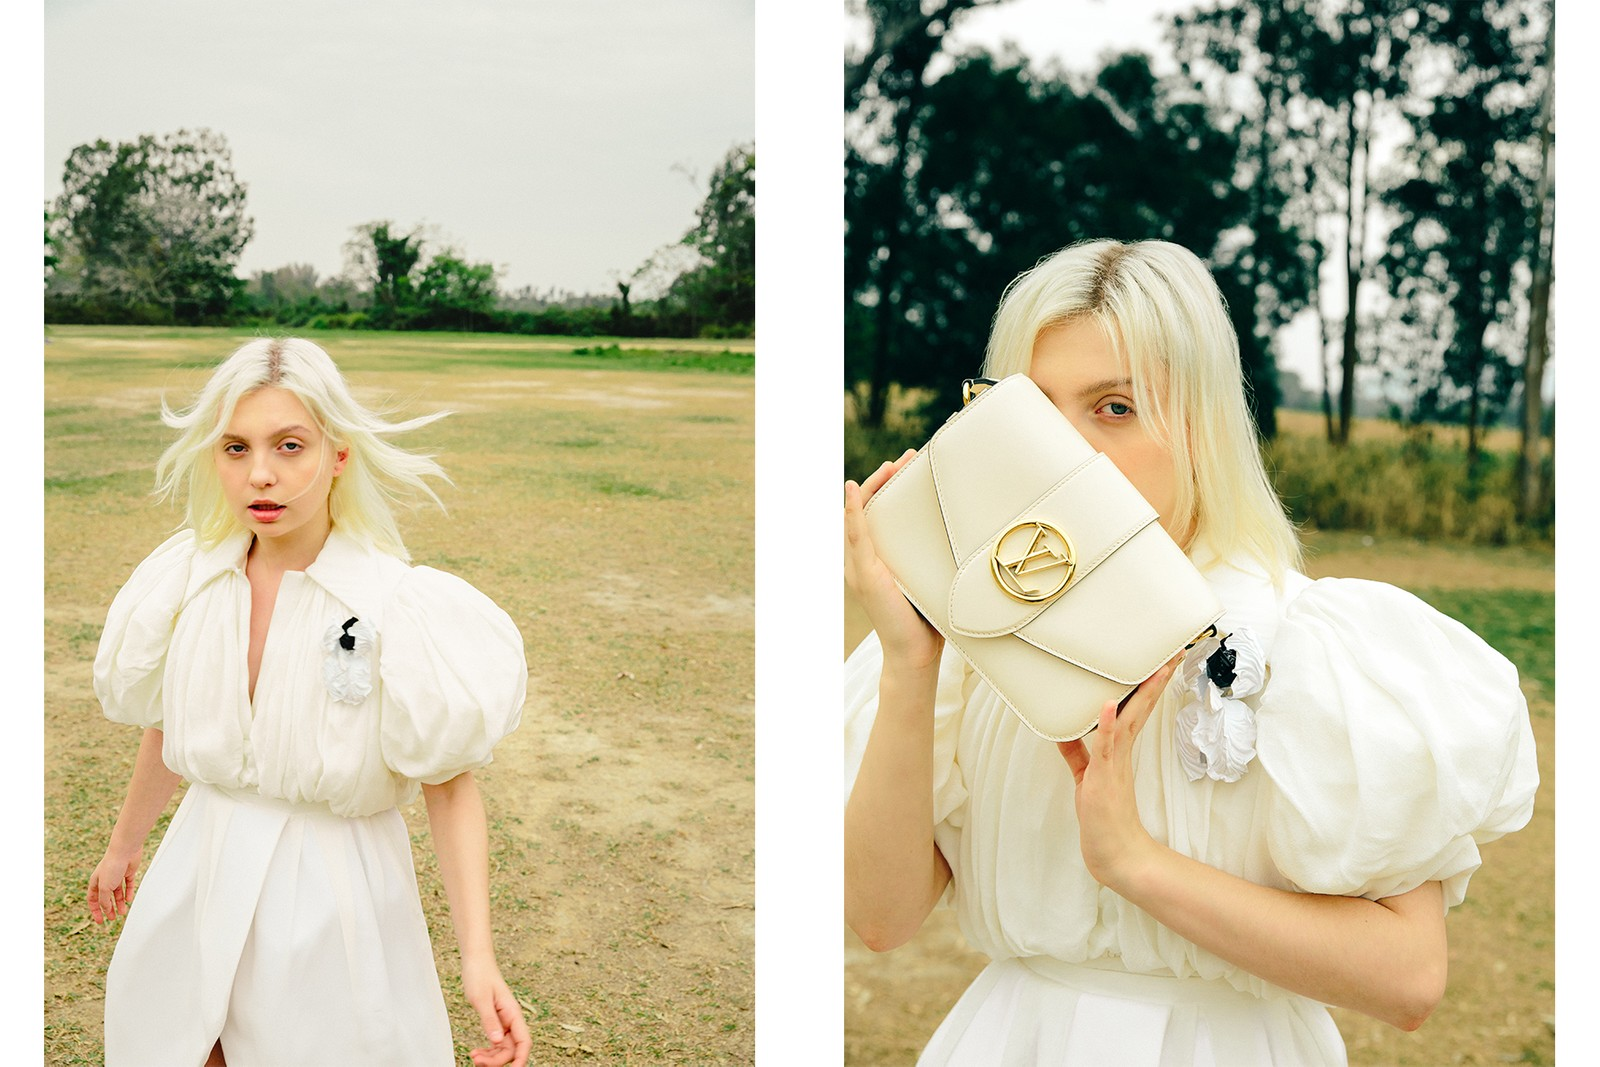 puffy sleeves trend female representation femininity simone rocha jacquemus cecilie bahnsen editorial